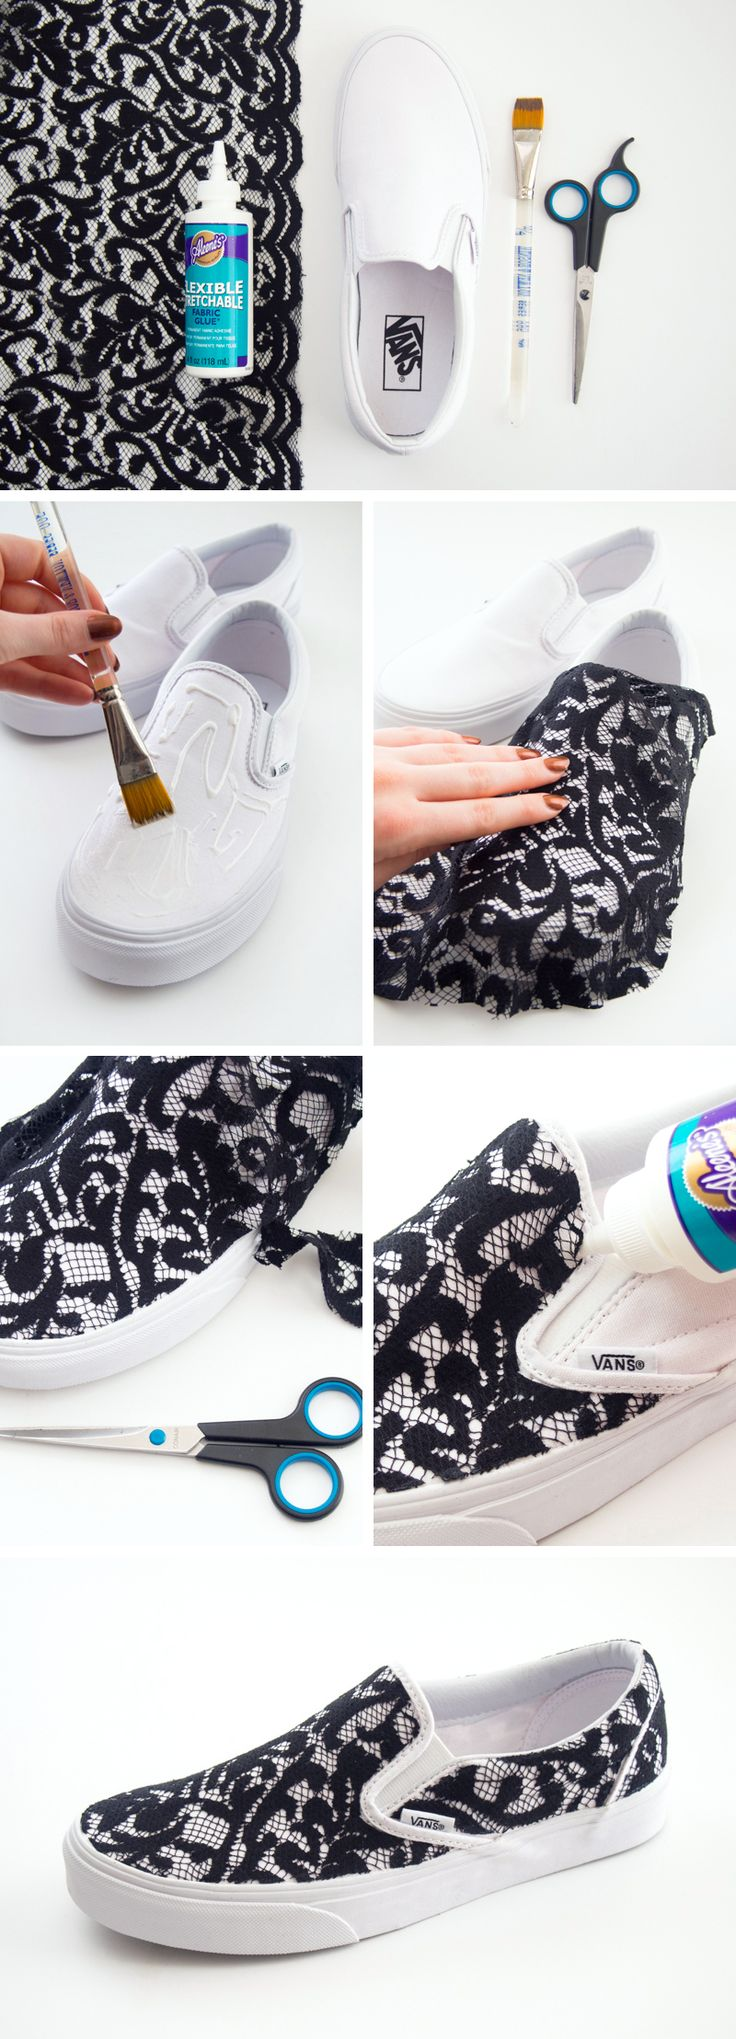 DIY Lace Slip-on Vans Sneakers